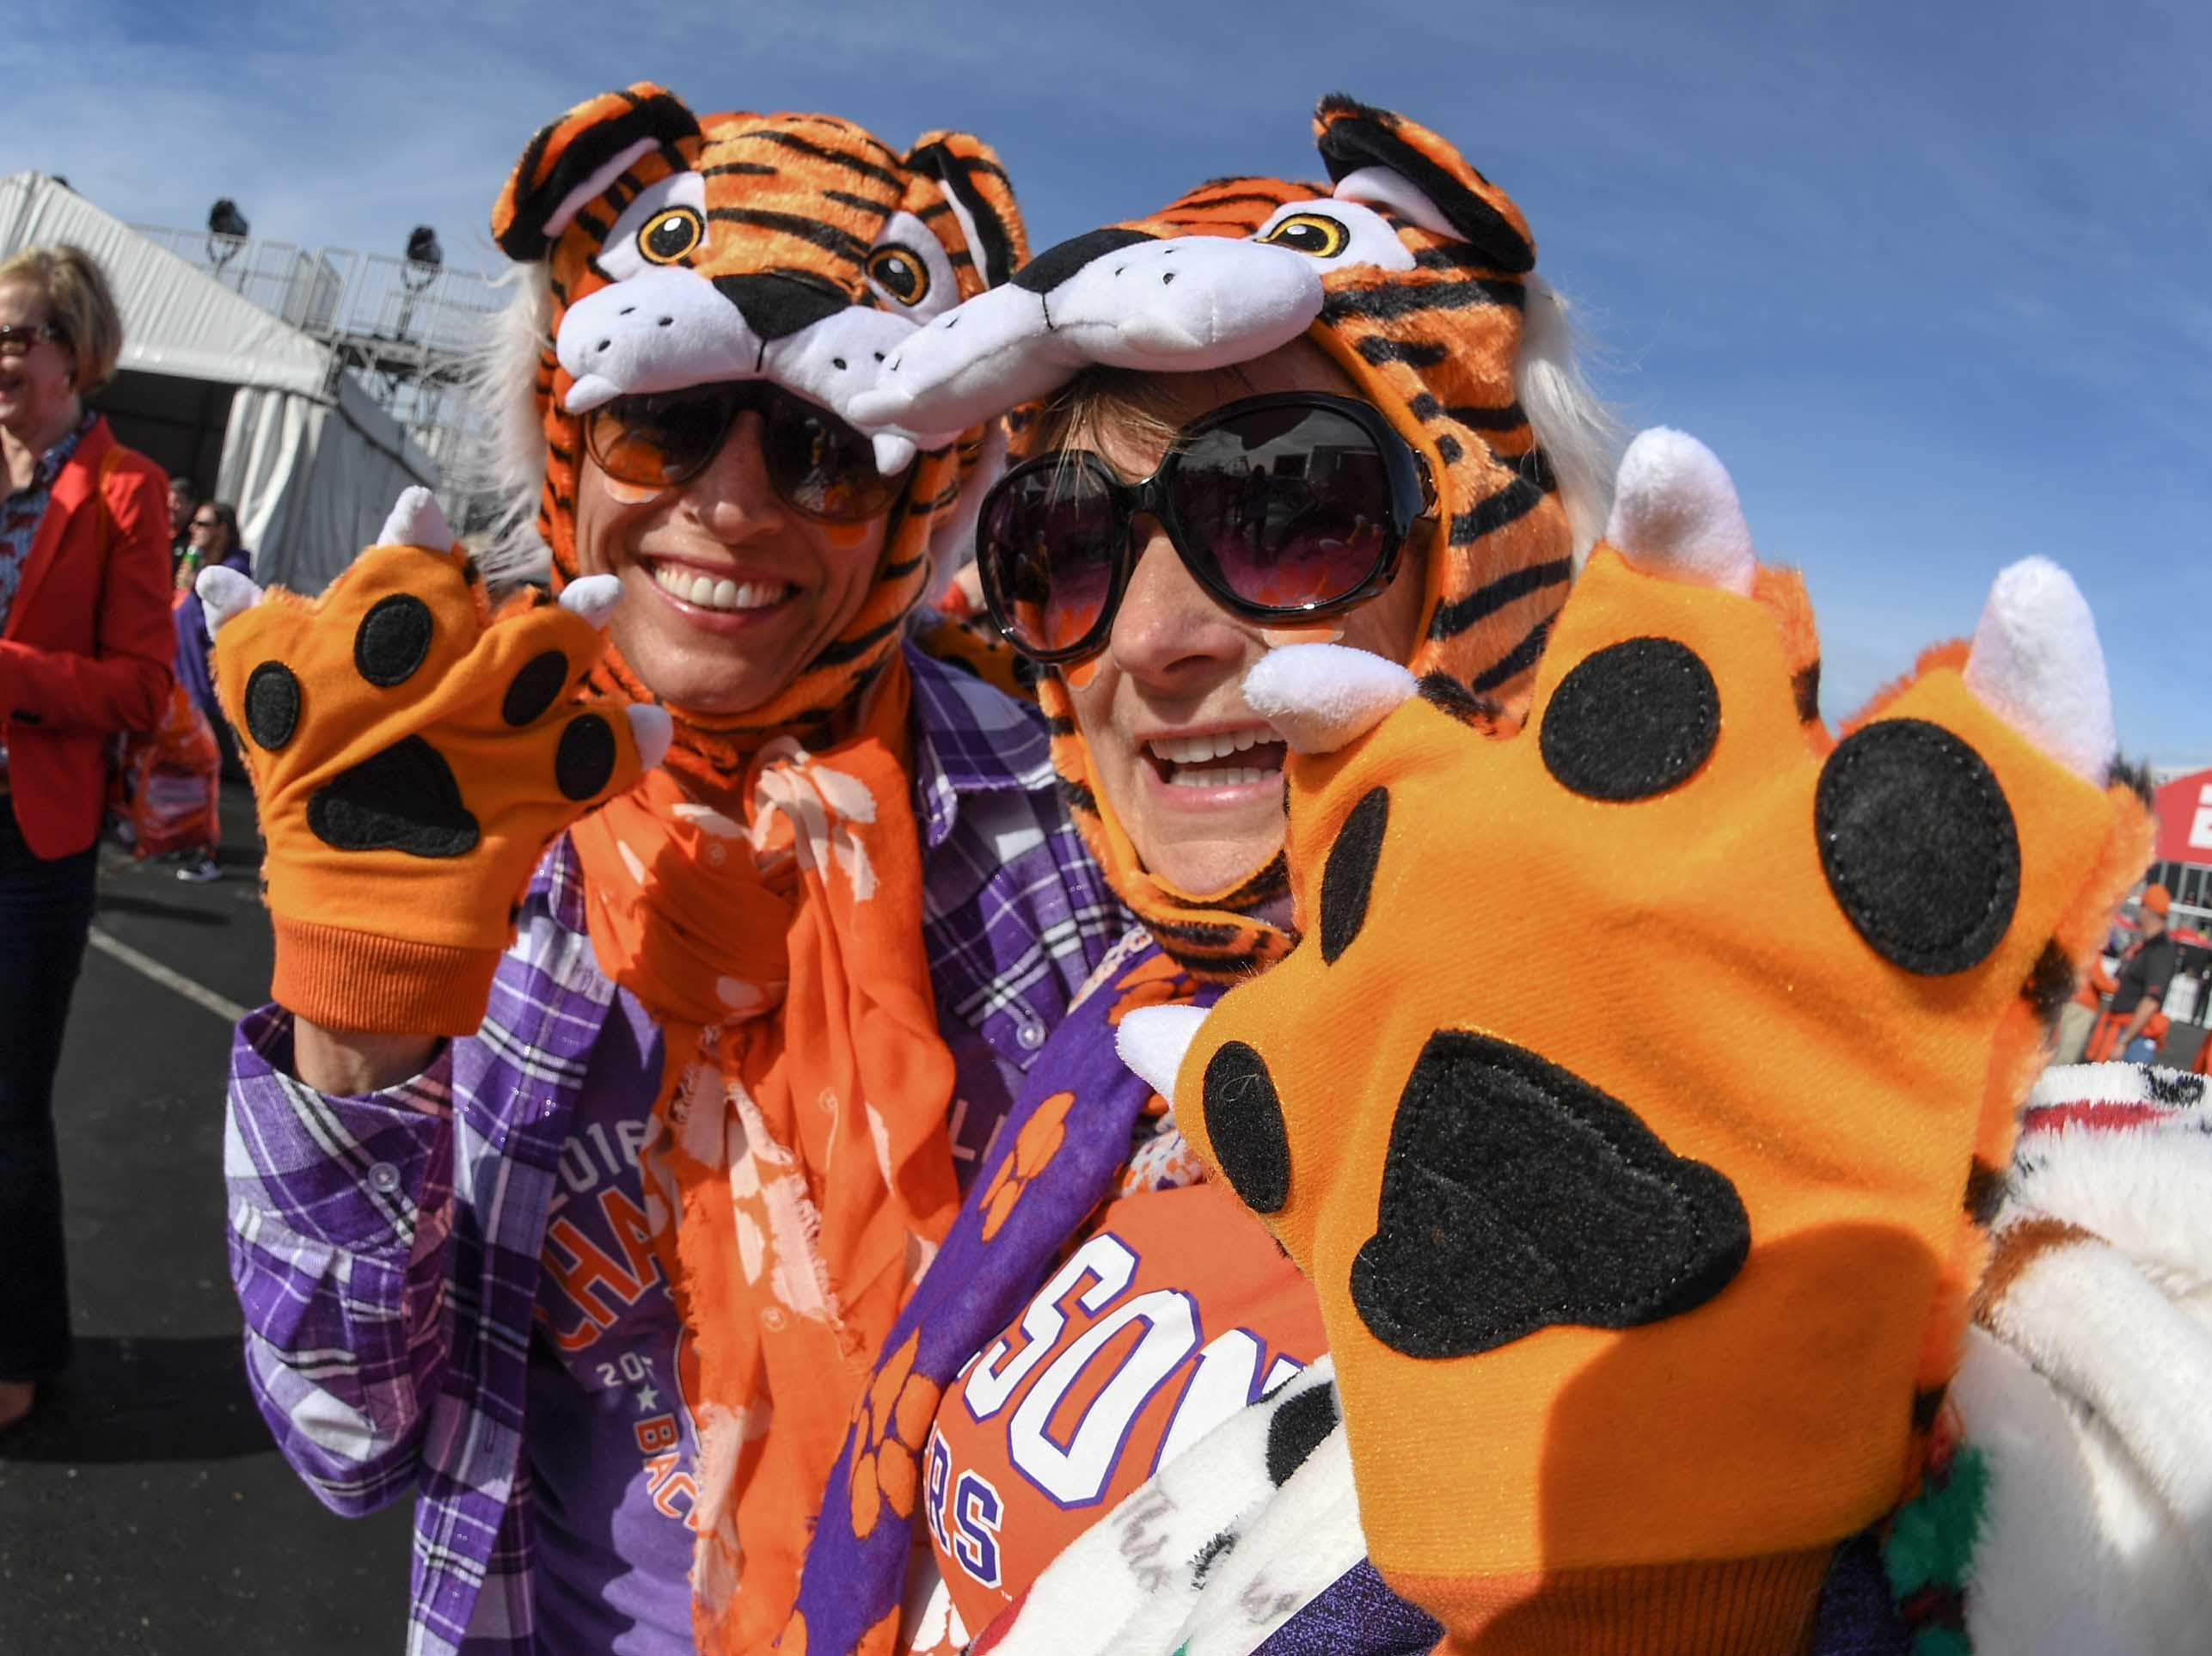 Clemson fans Christine Faenza, left, and Deborah Nelson participate at the College Football Championship Playoff Tailgate outside Levi's Stadium in Santa Clara, California Monday, January 7, 2019.